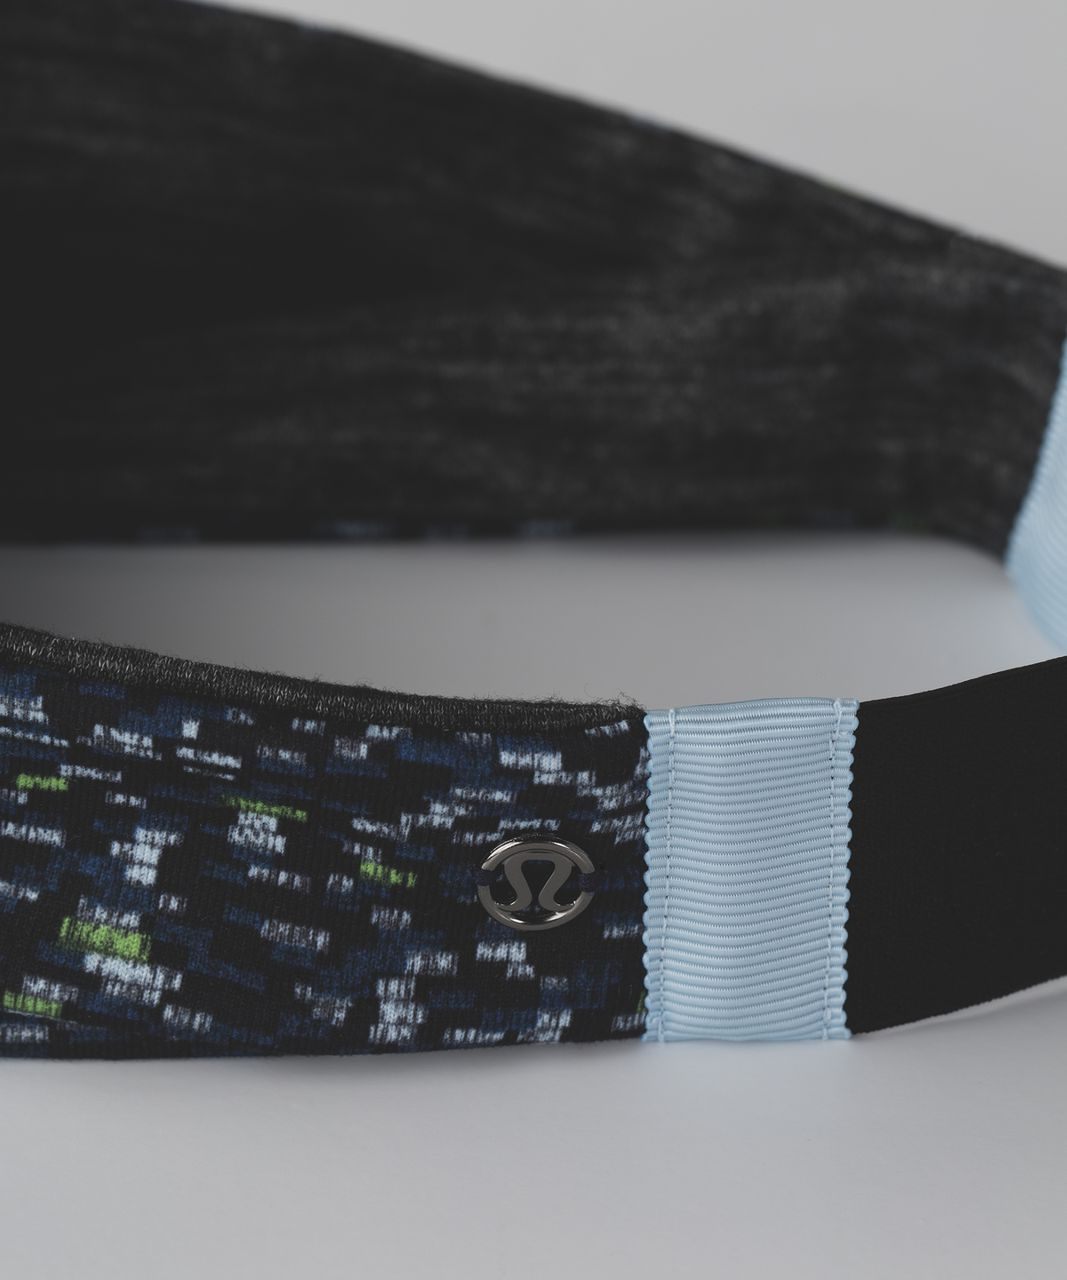 Lululemon Fringe Fighter Headband - Digi Pixie Caspian Blue Black / Heathered Black